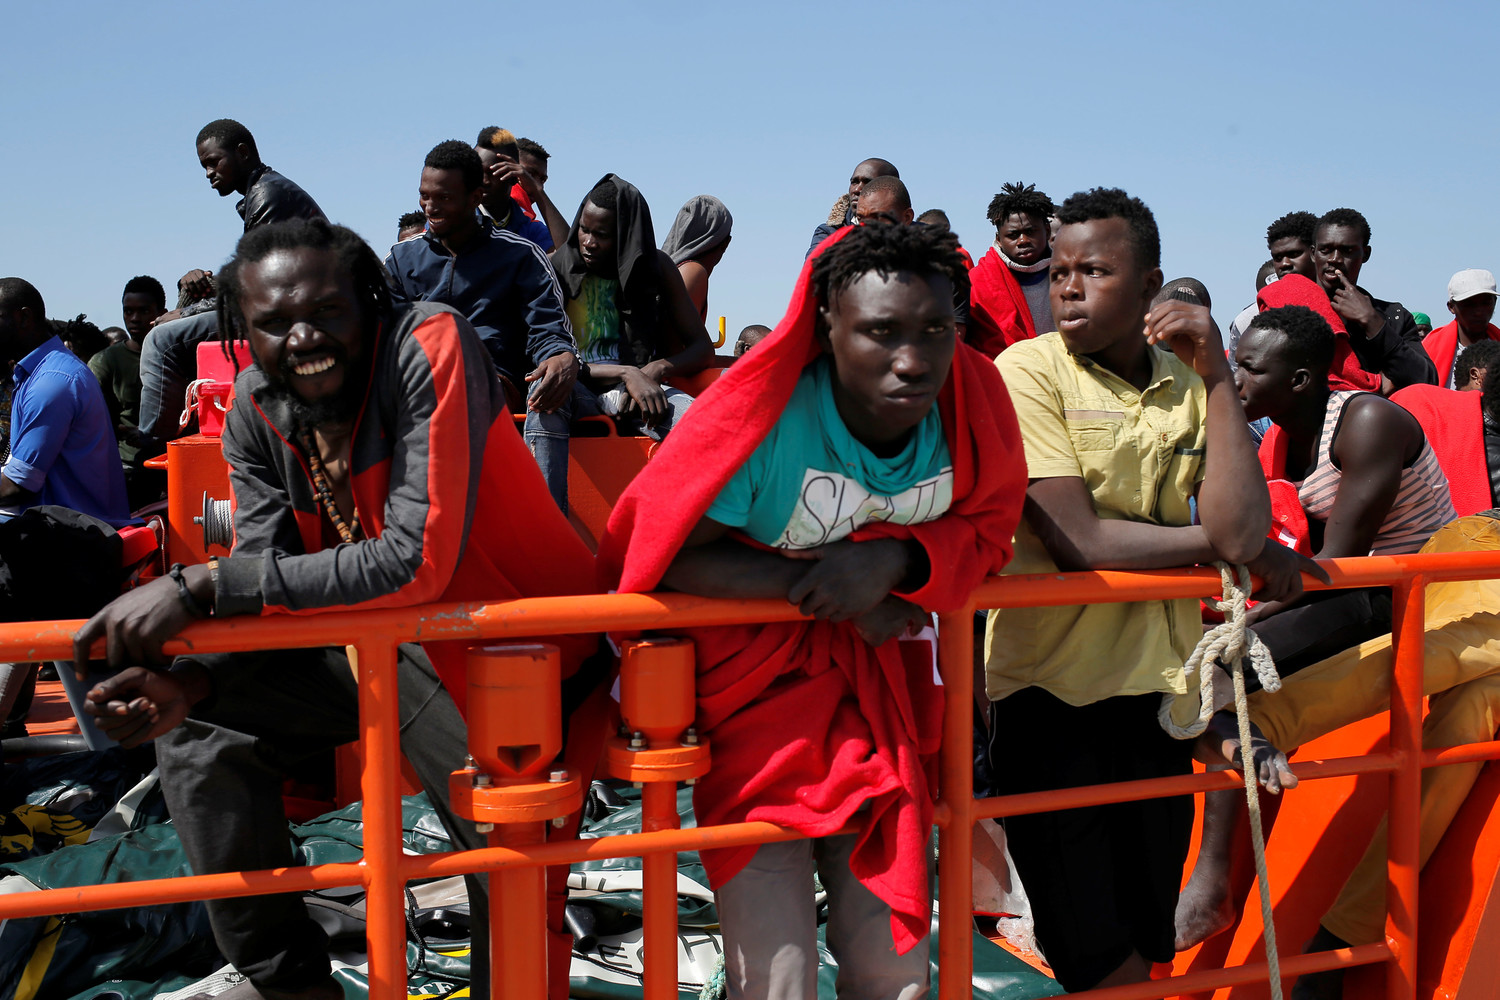 Migrants, intercepted aboard a makeshift boat in the Mediterranean Sea, are seen after arriving on a rescue boat July 22 at the Spanish port of Algeciras.